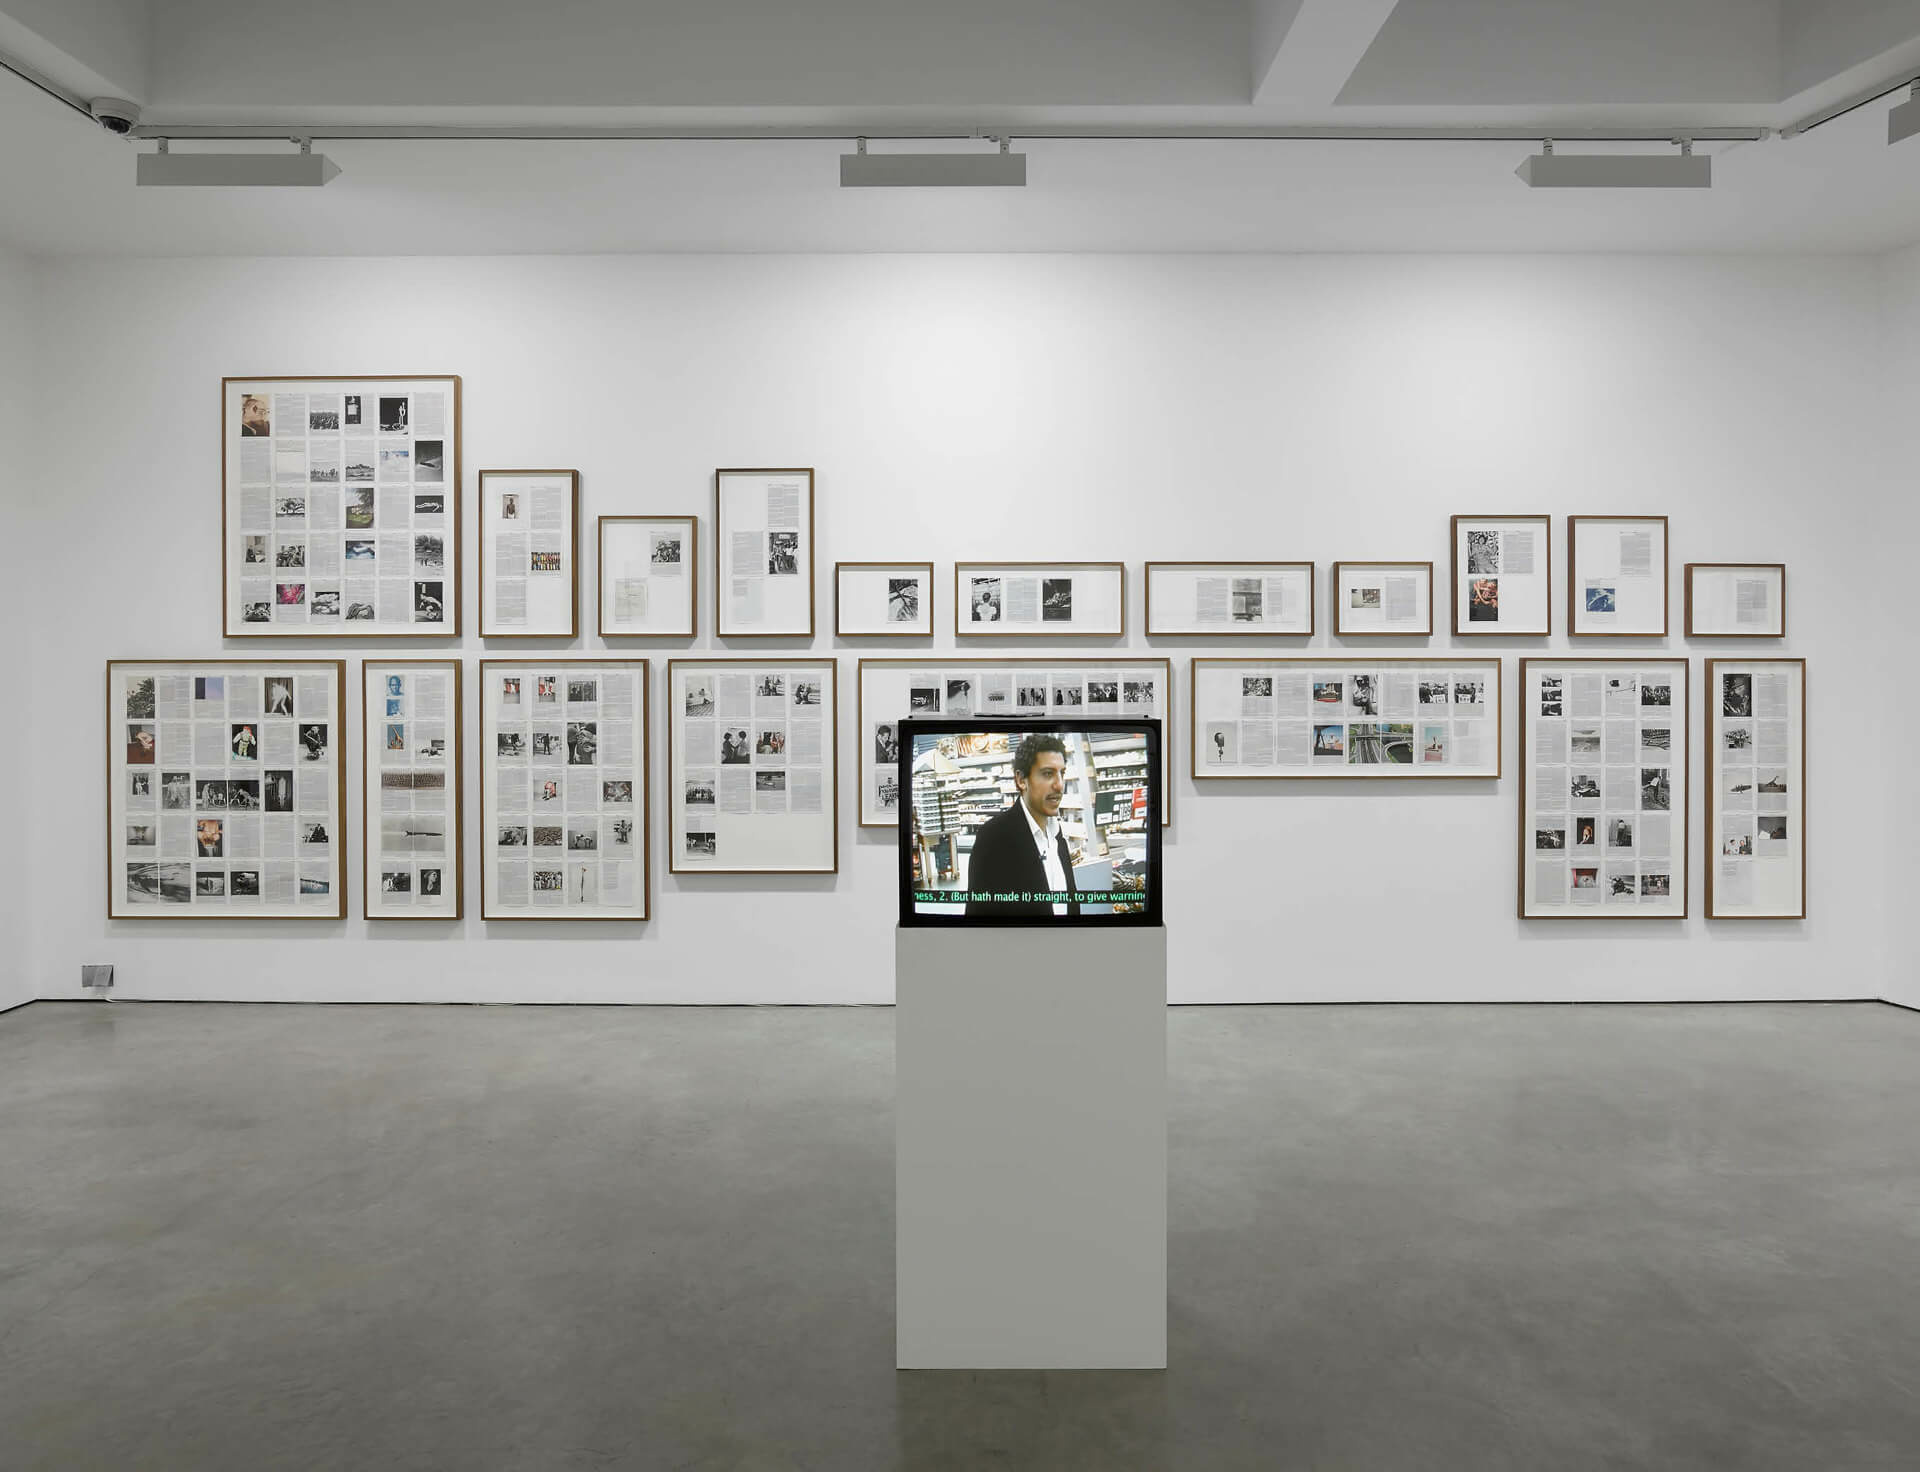 Broomberg & Chanarin's exhibition travels to Hasselblad Foundation